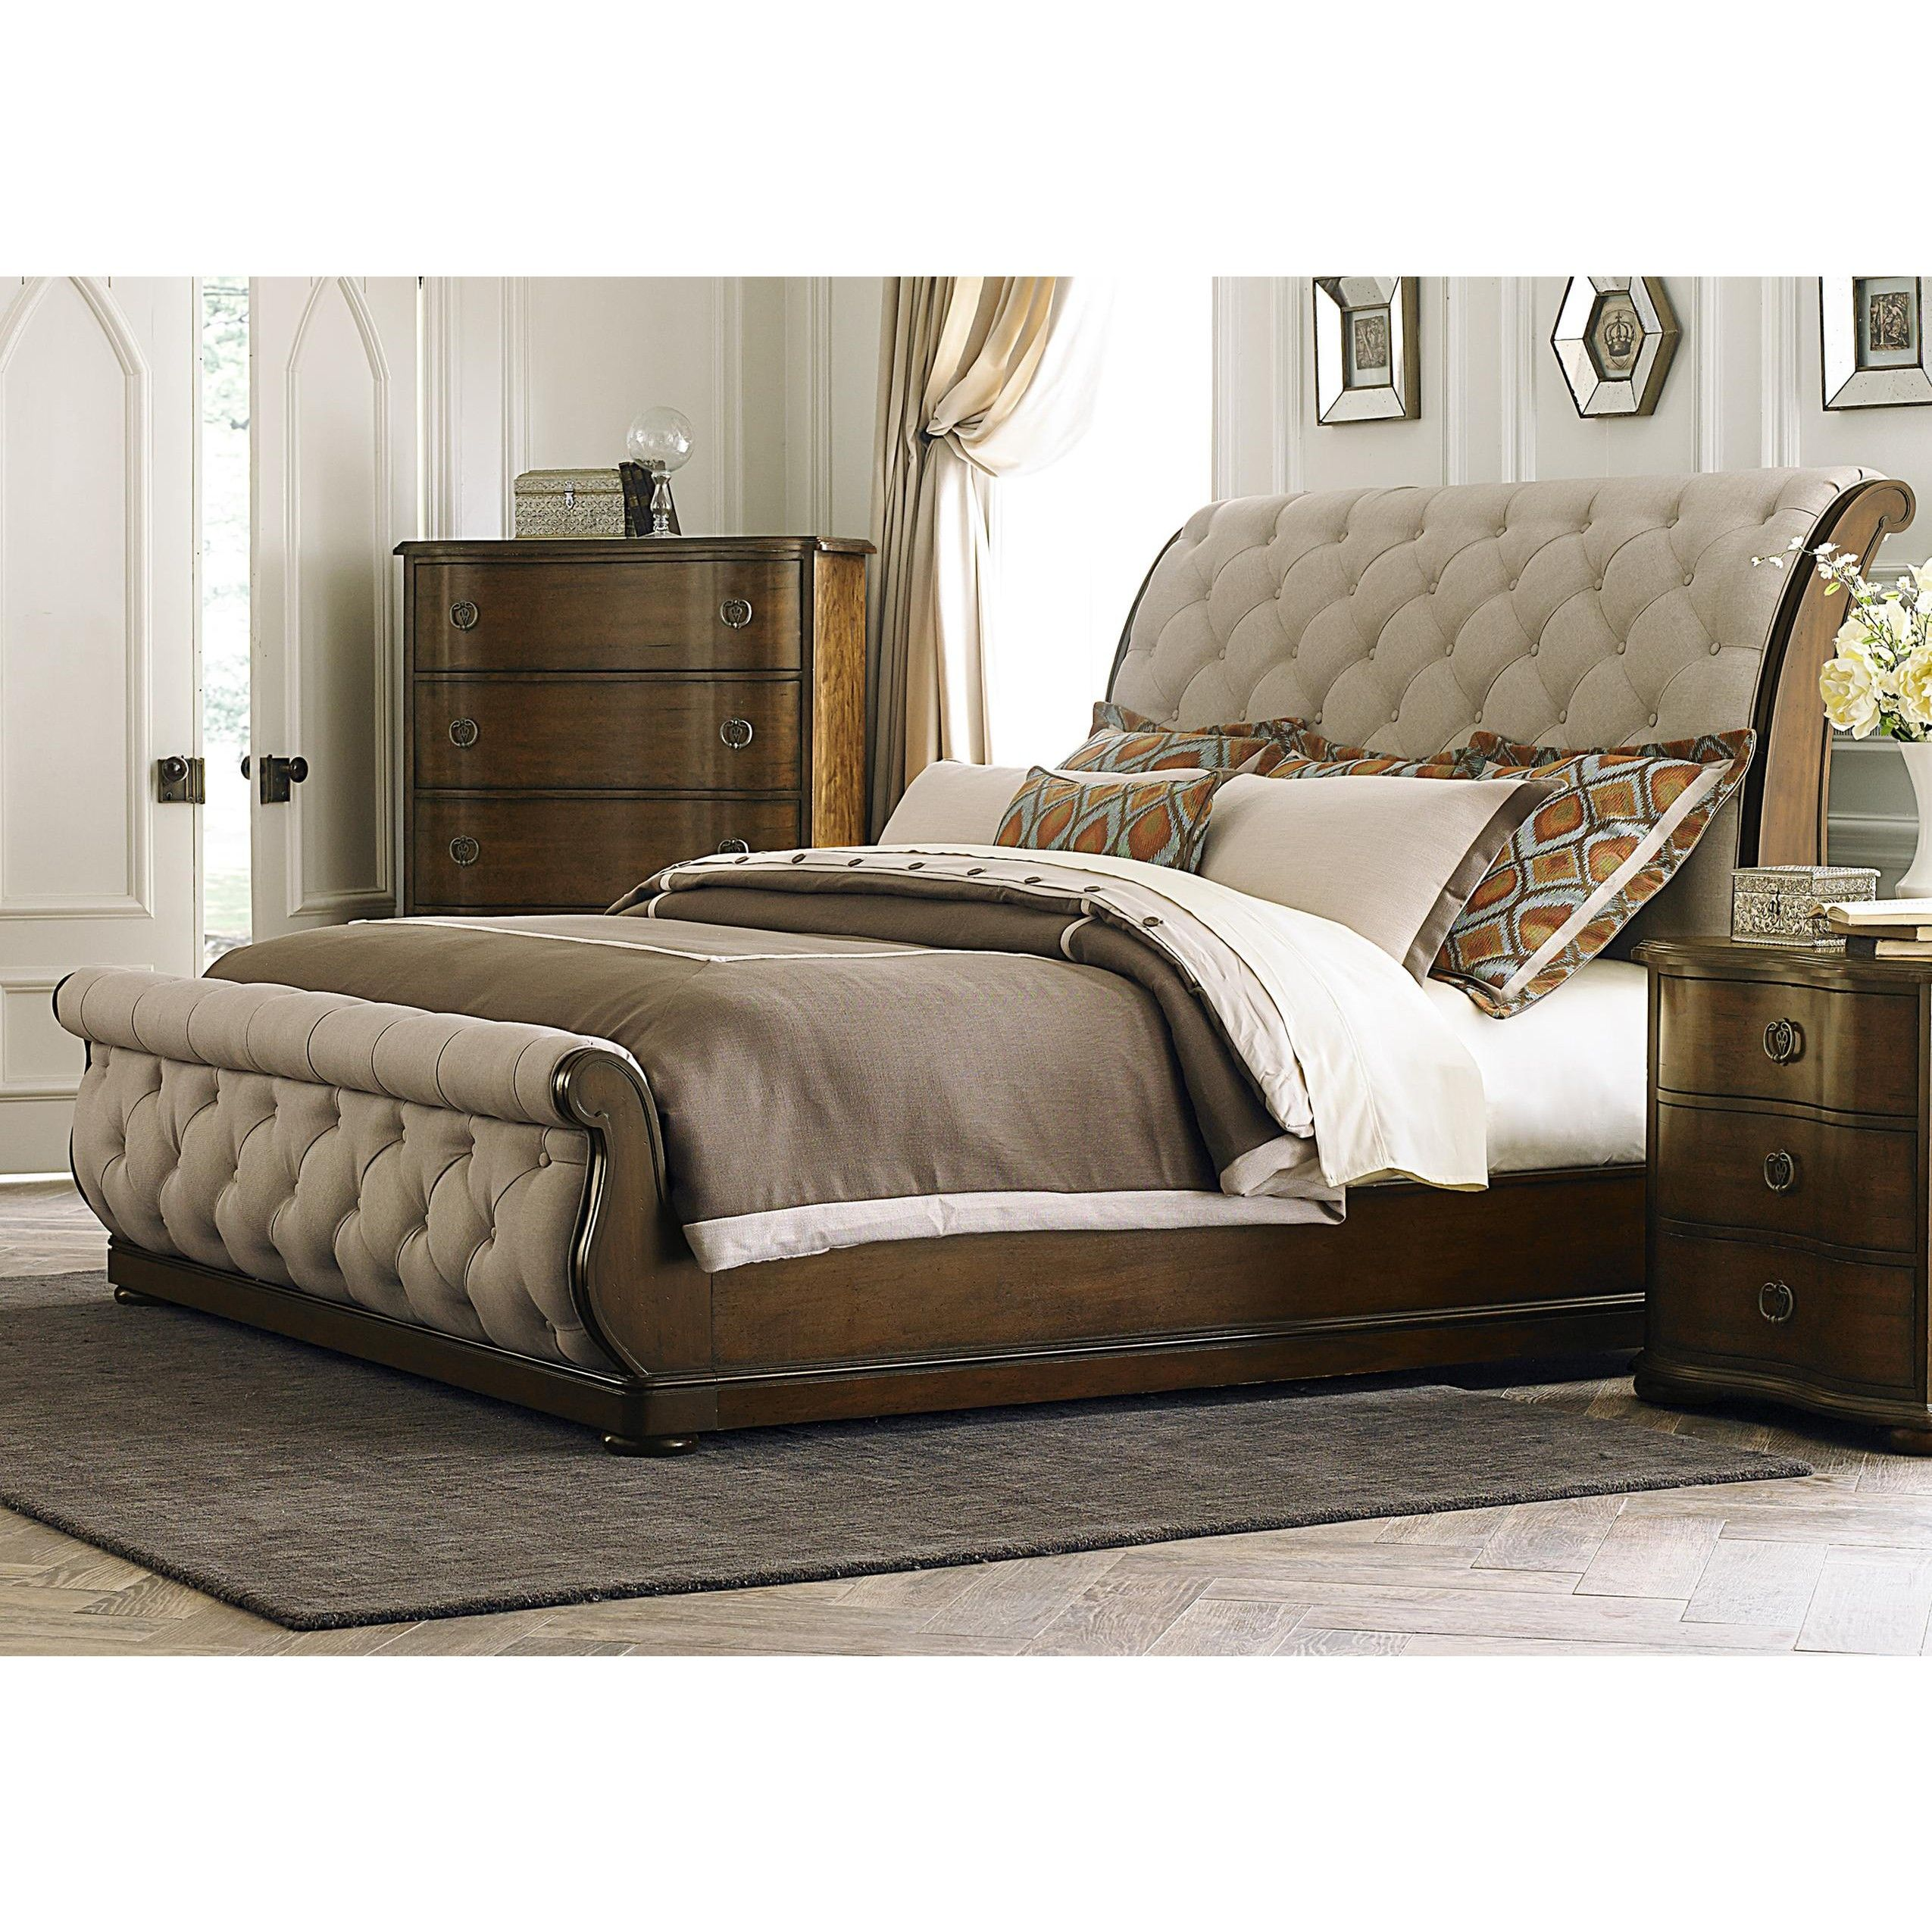 King Sleigh Bed Bedroom Sets Liberty Furniture Cotswold Upholstered Sleigh Bed 545 Br New